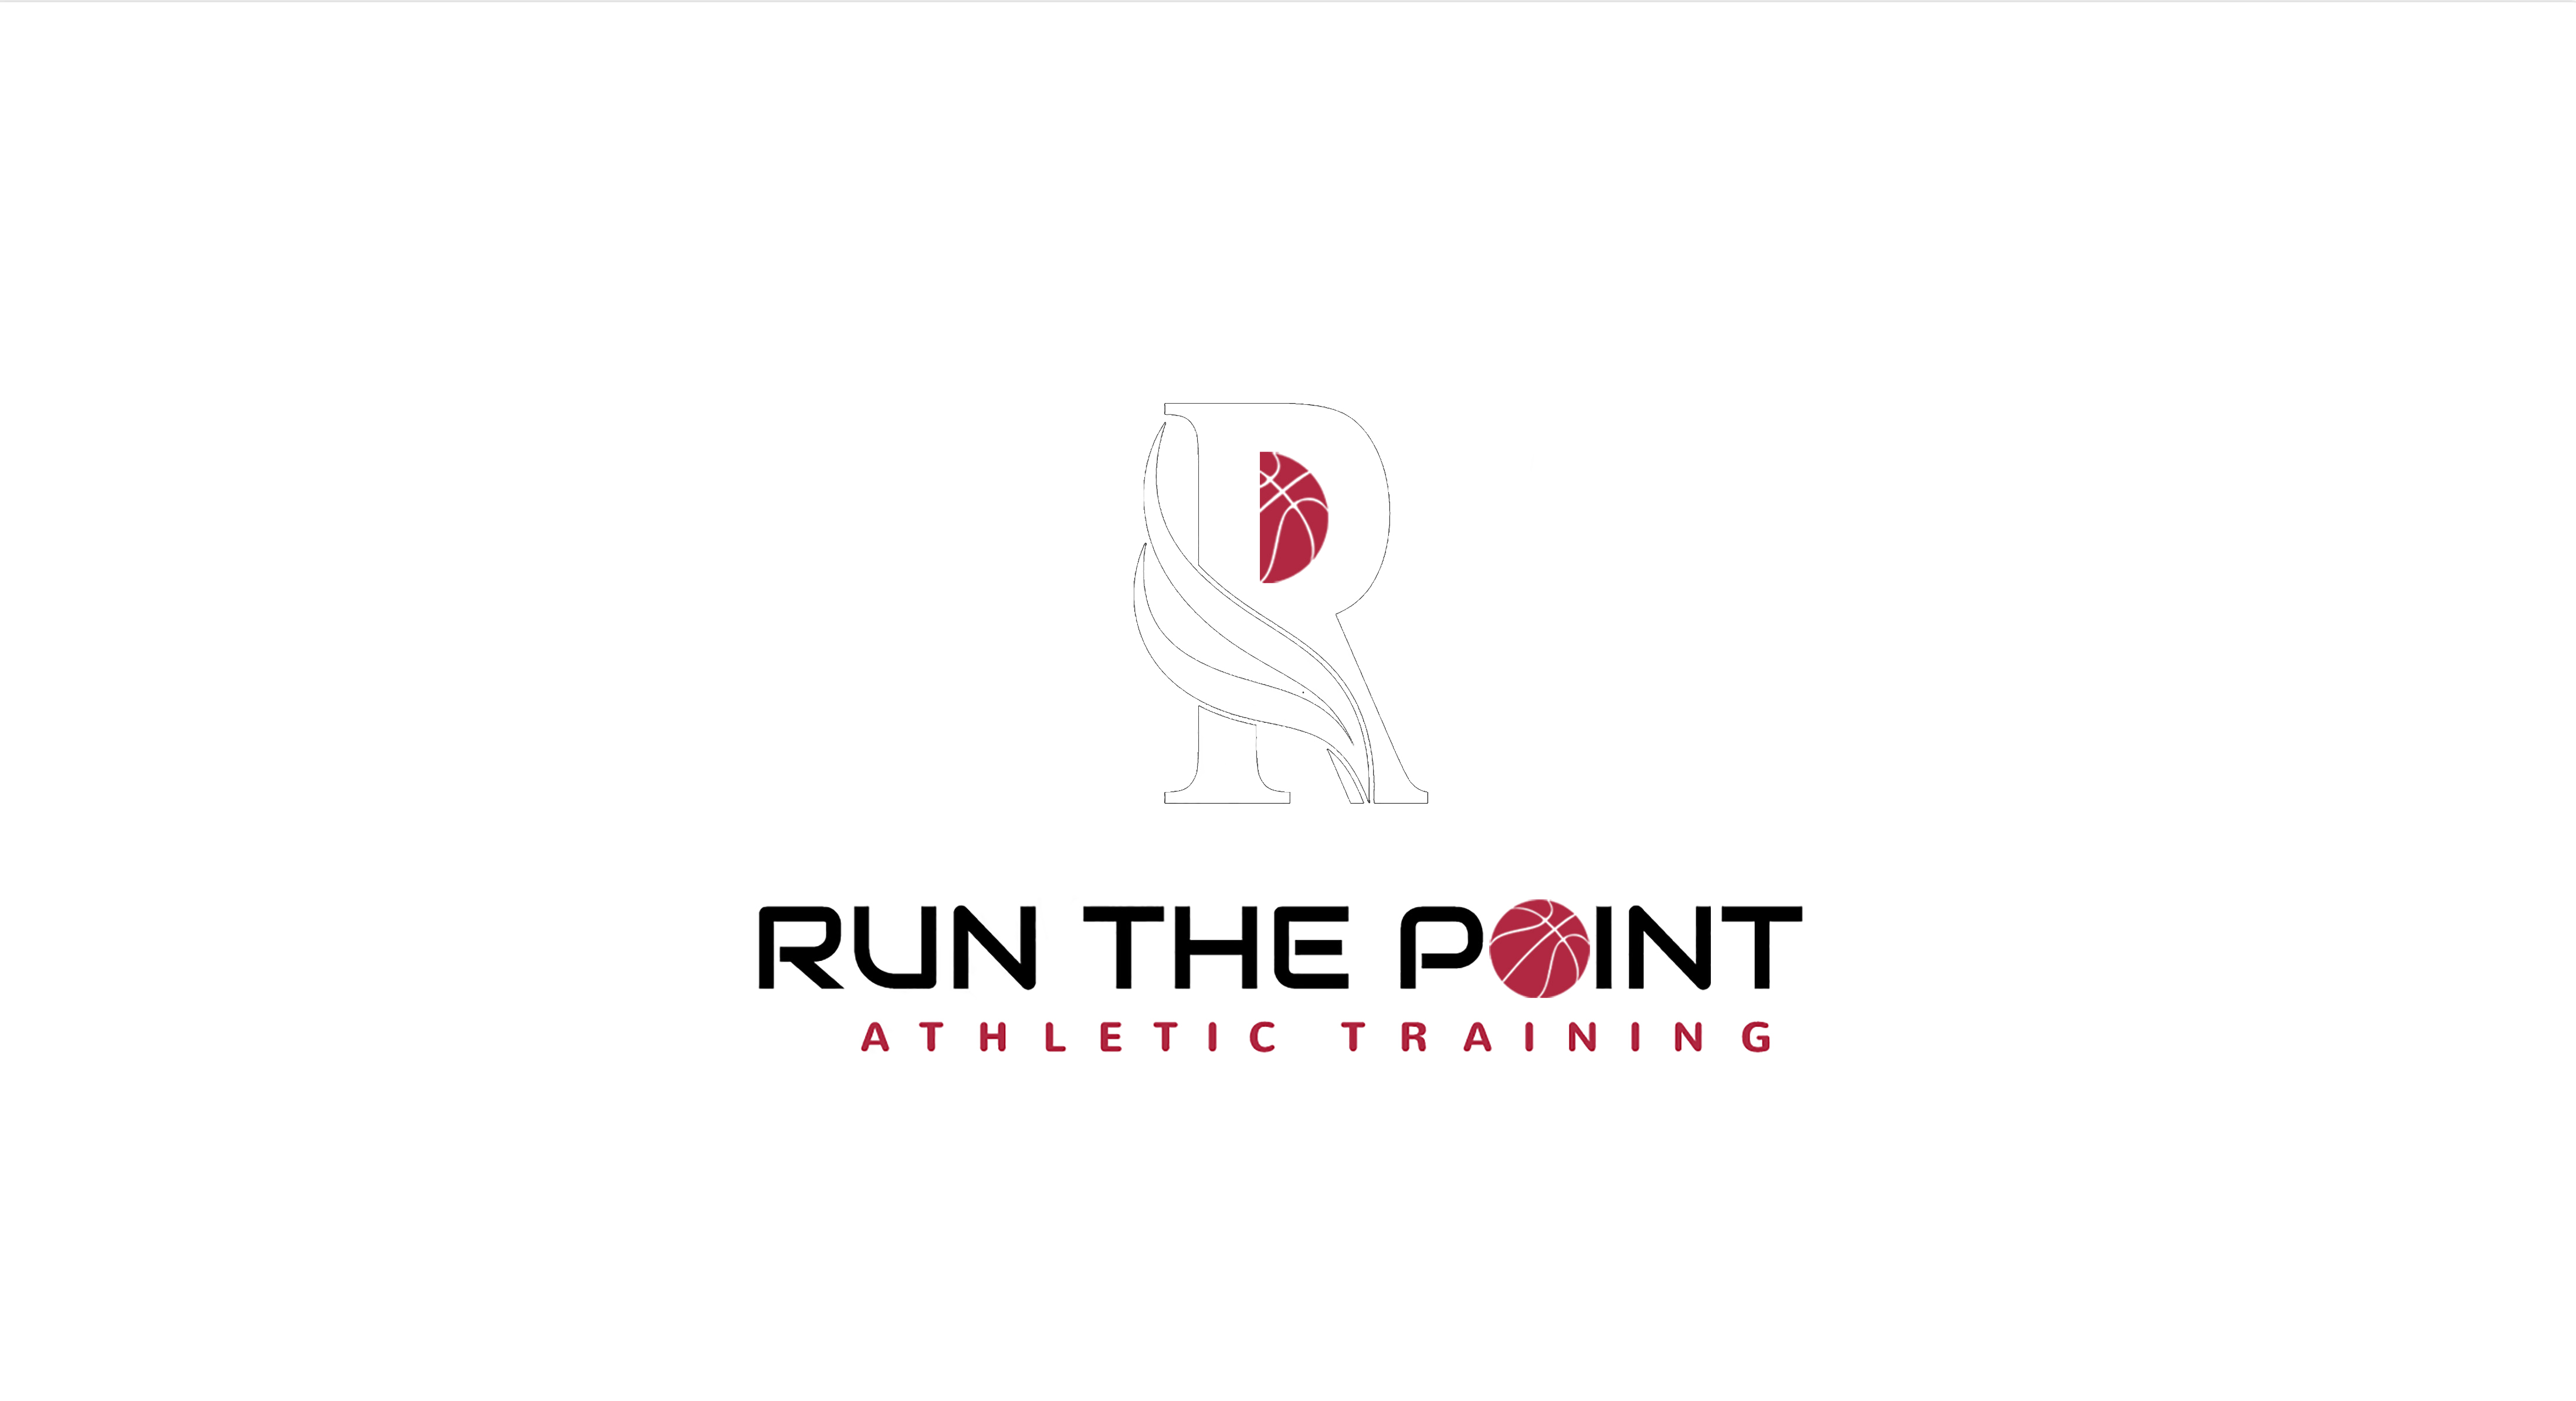 Run the Point Athletic Training